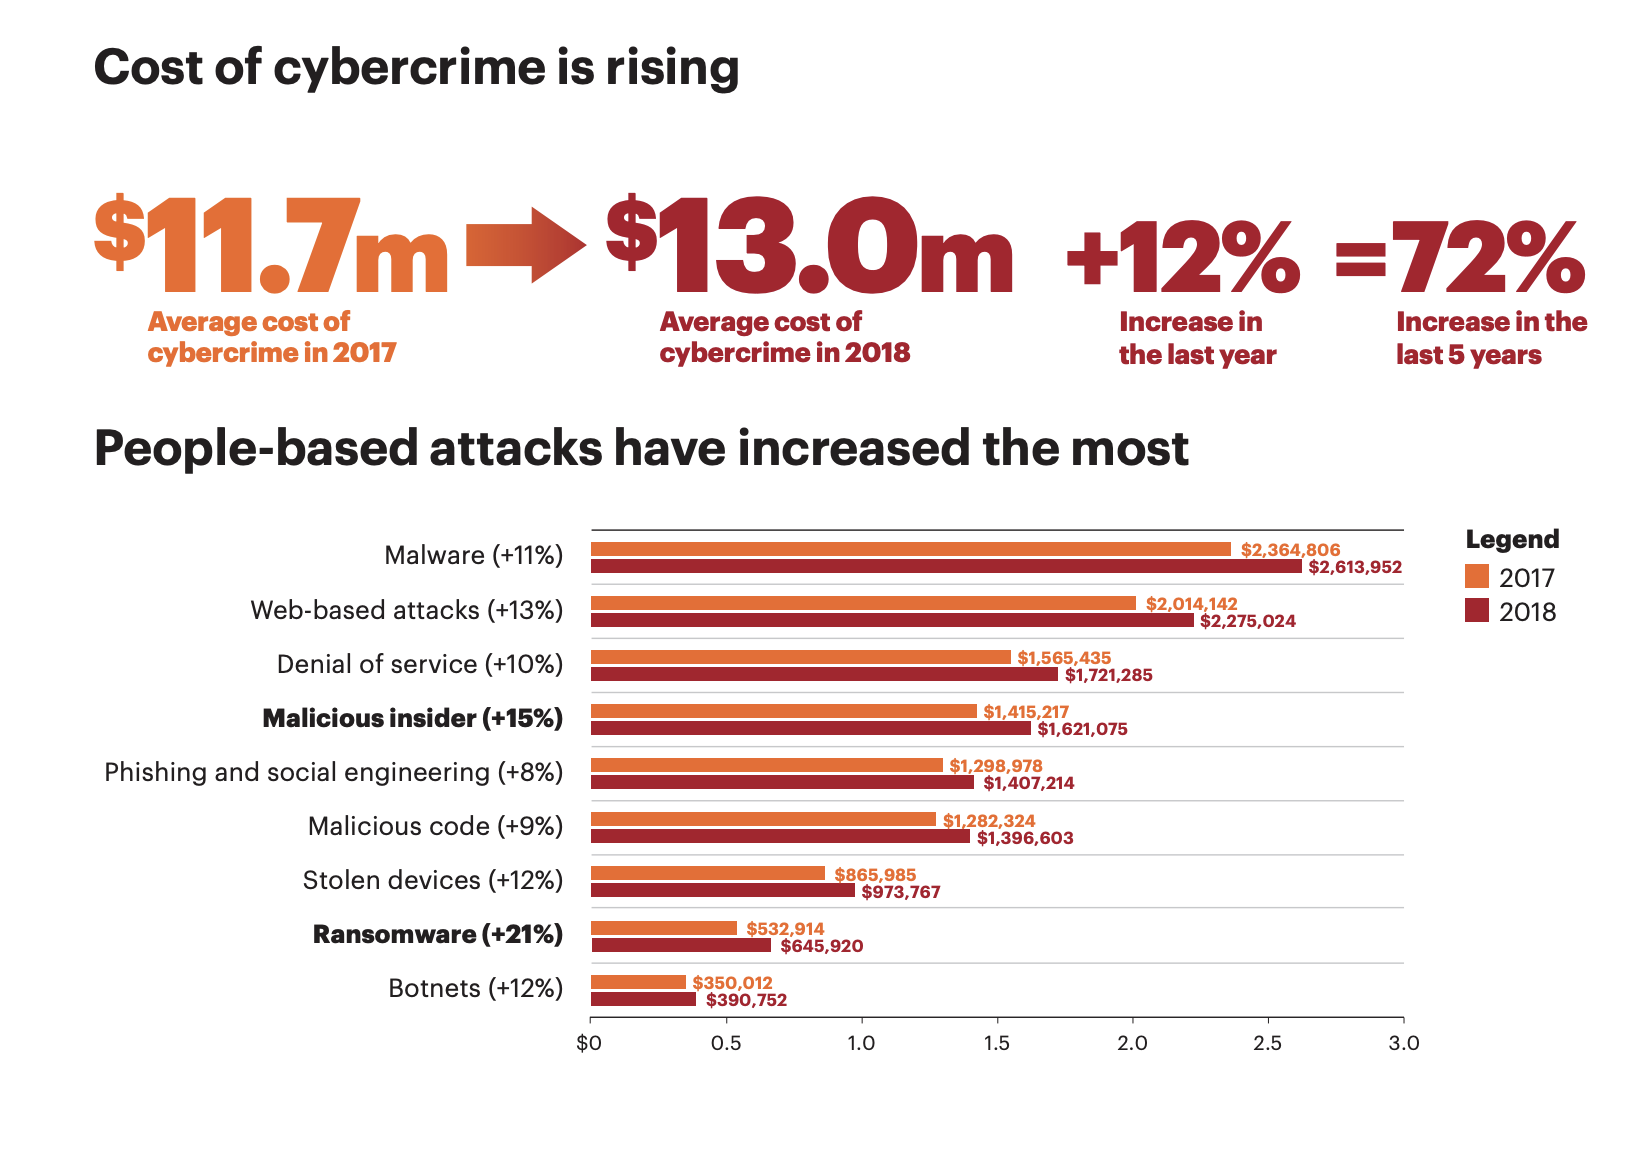 The costs of cybercrime rose 12% between 2017-18